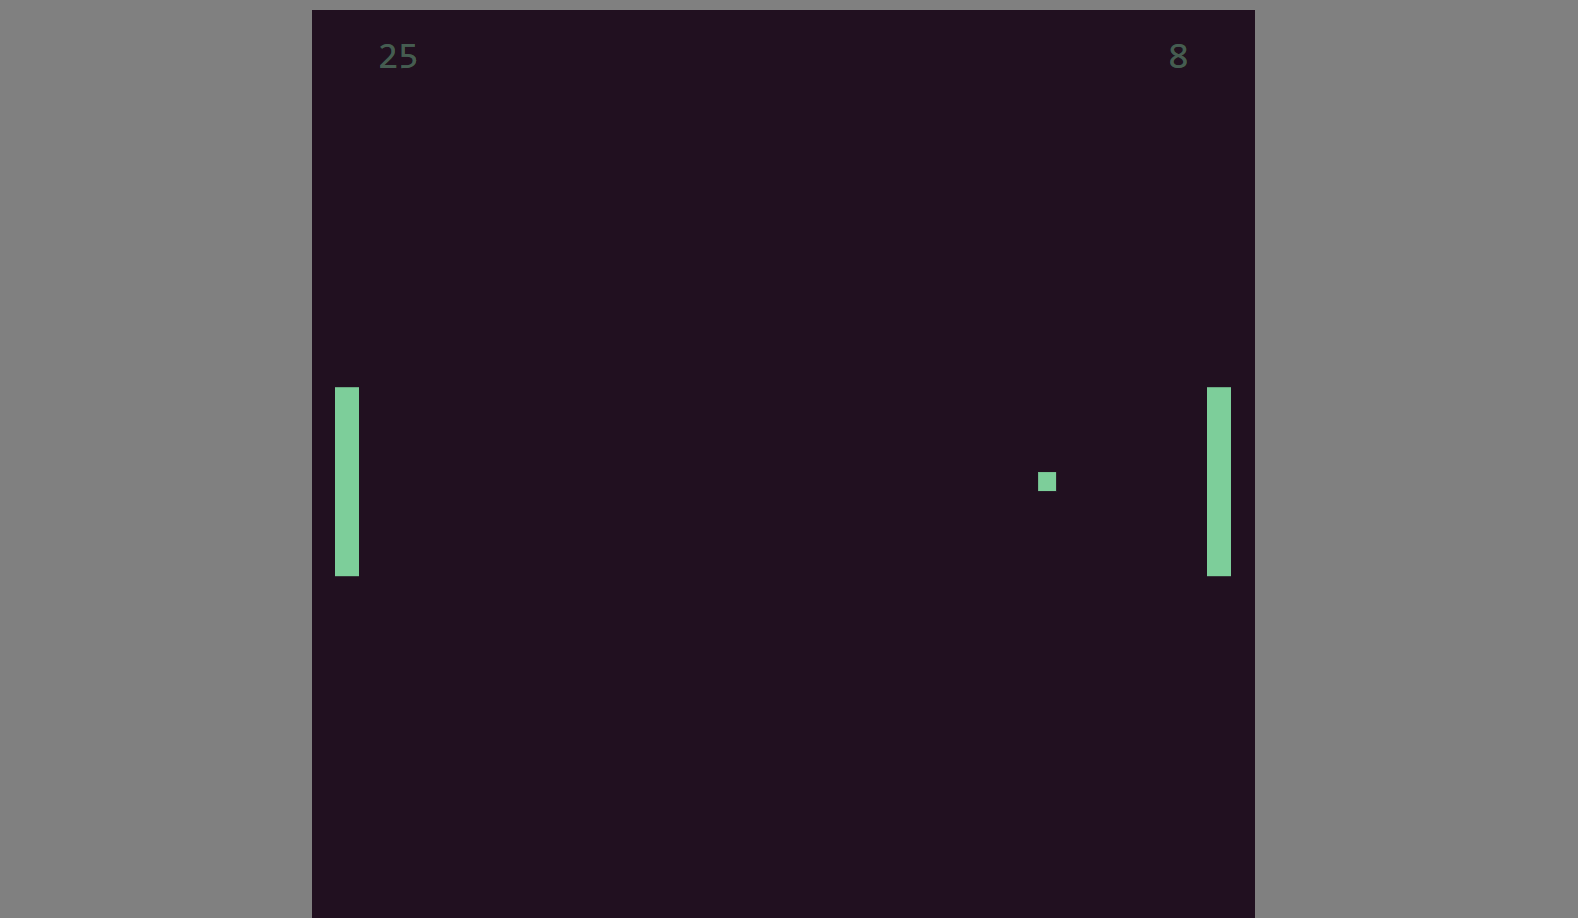 PONG GAME IN JAVASCRIPT WITH SOURCE CODE